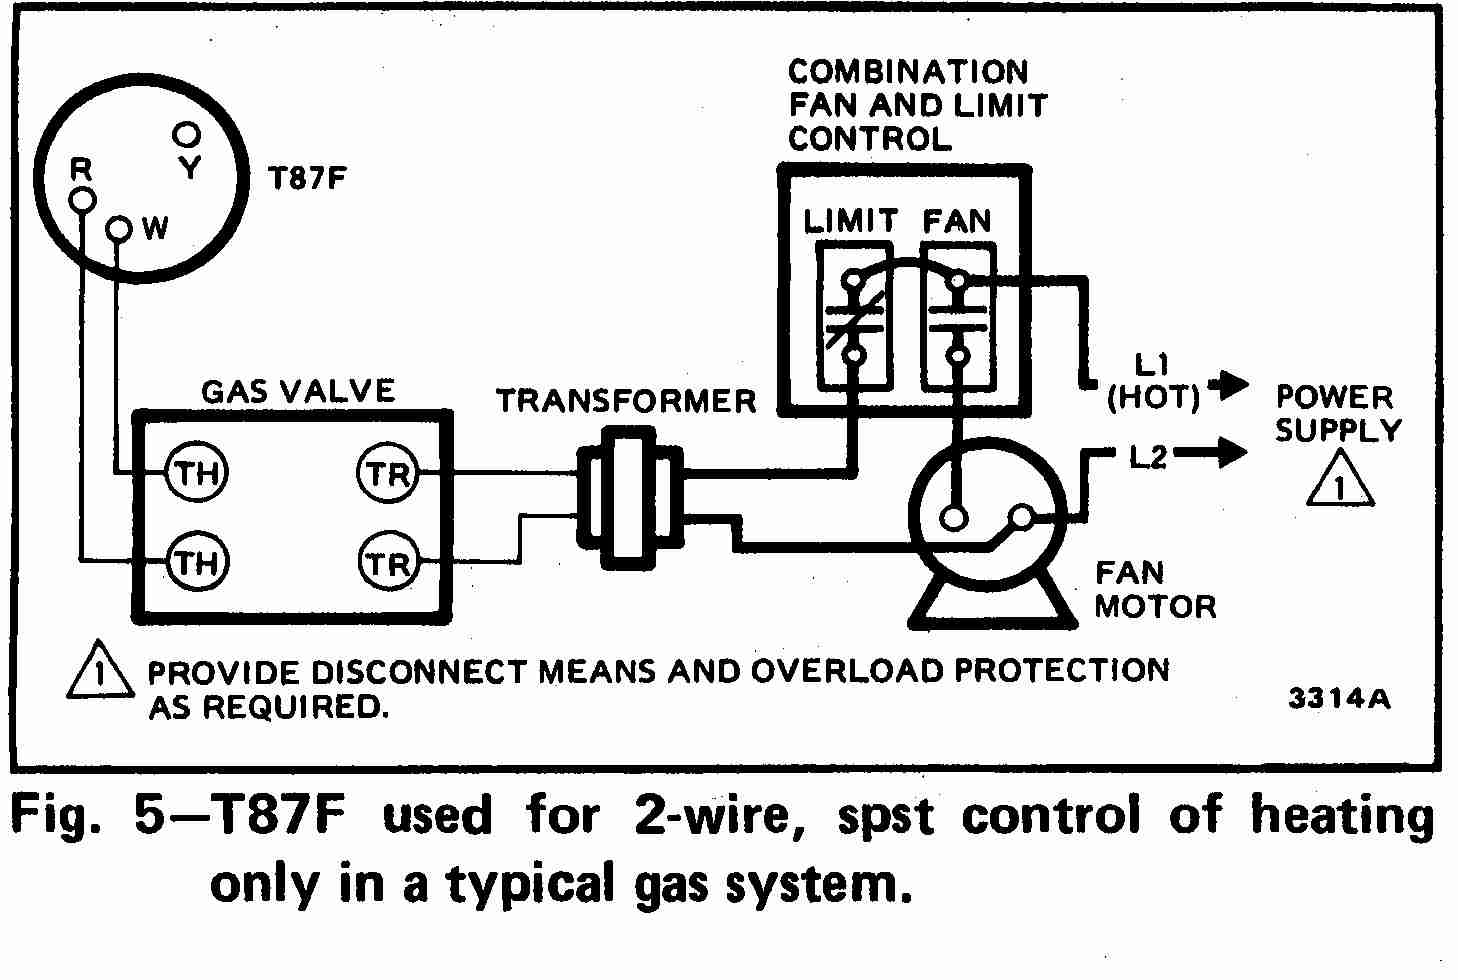 TT_T87F_0002_2Wg_DJF guide to wiring connections for room thermostats  at n-0.co